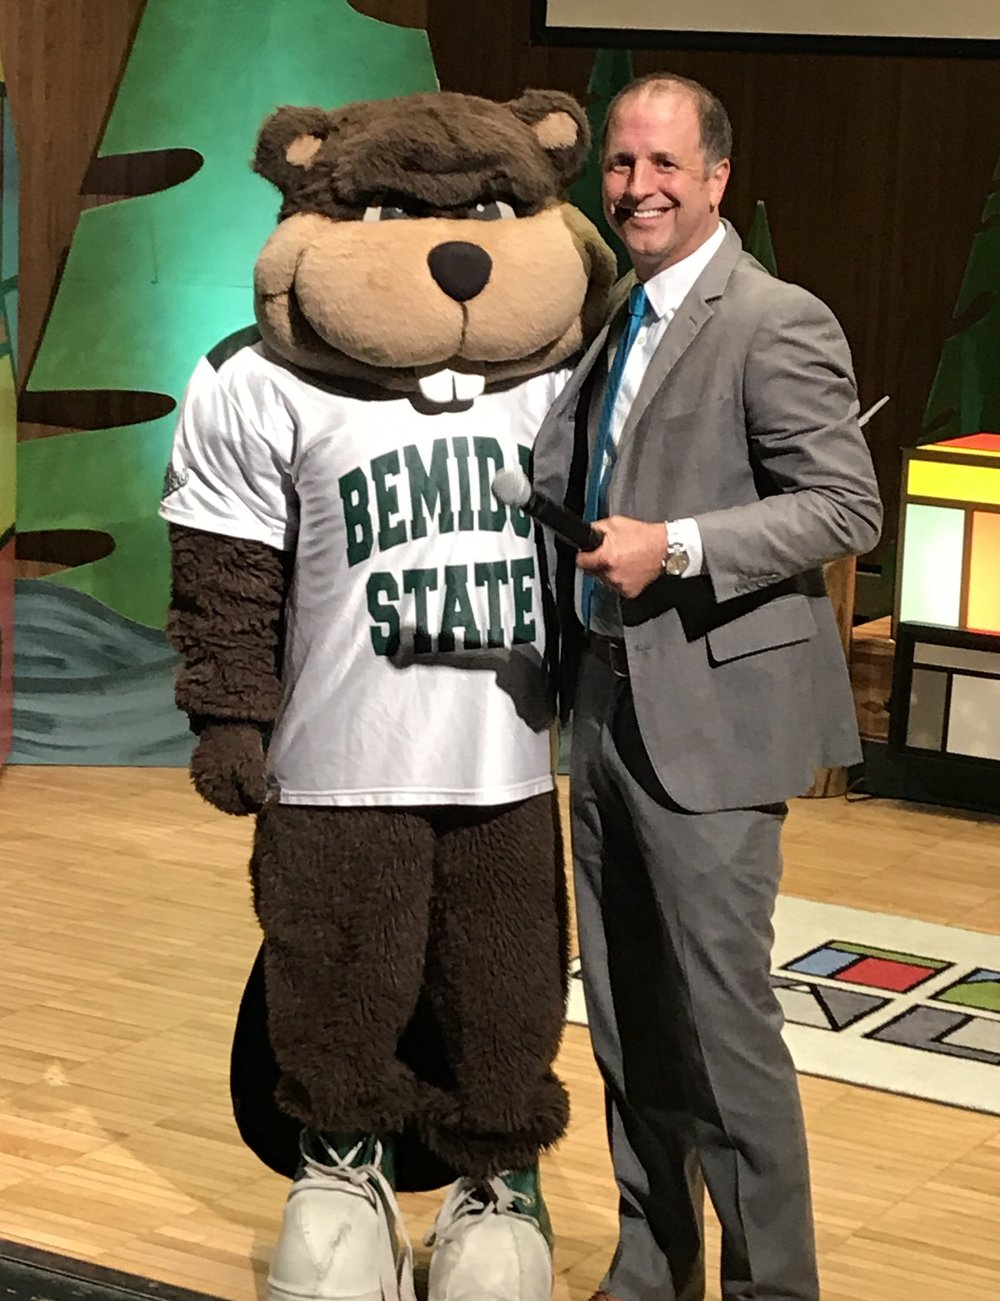 Acker is an adjunct faculty member at Bemidji State University